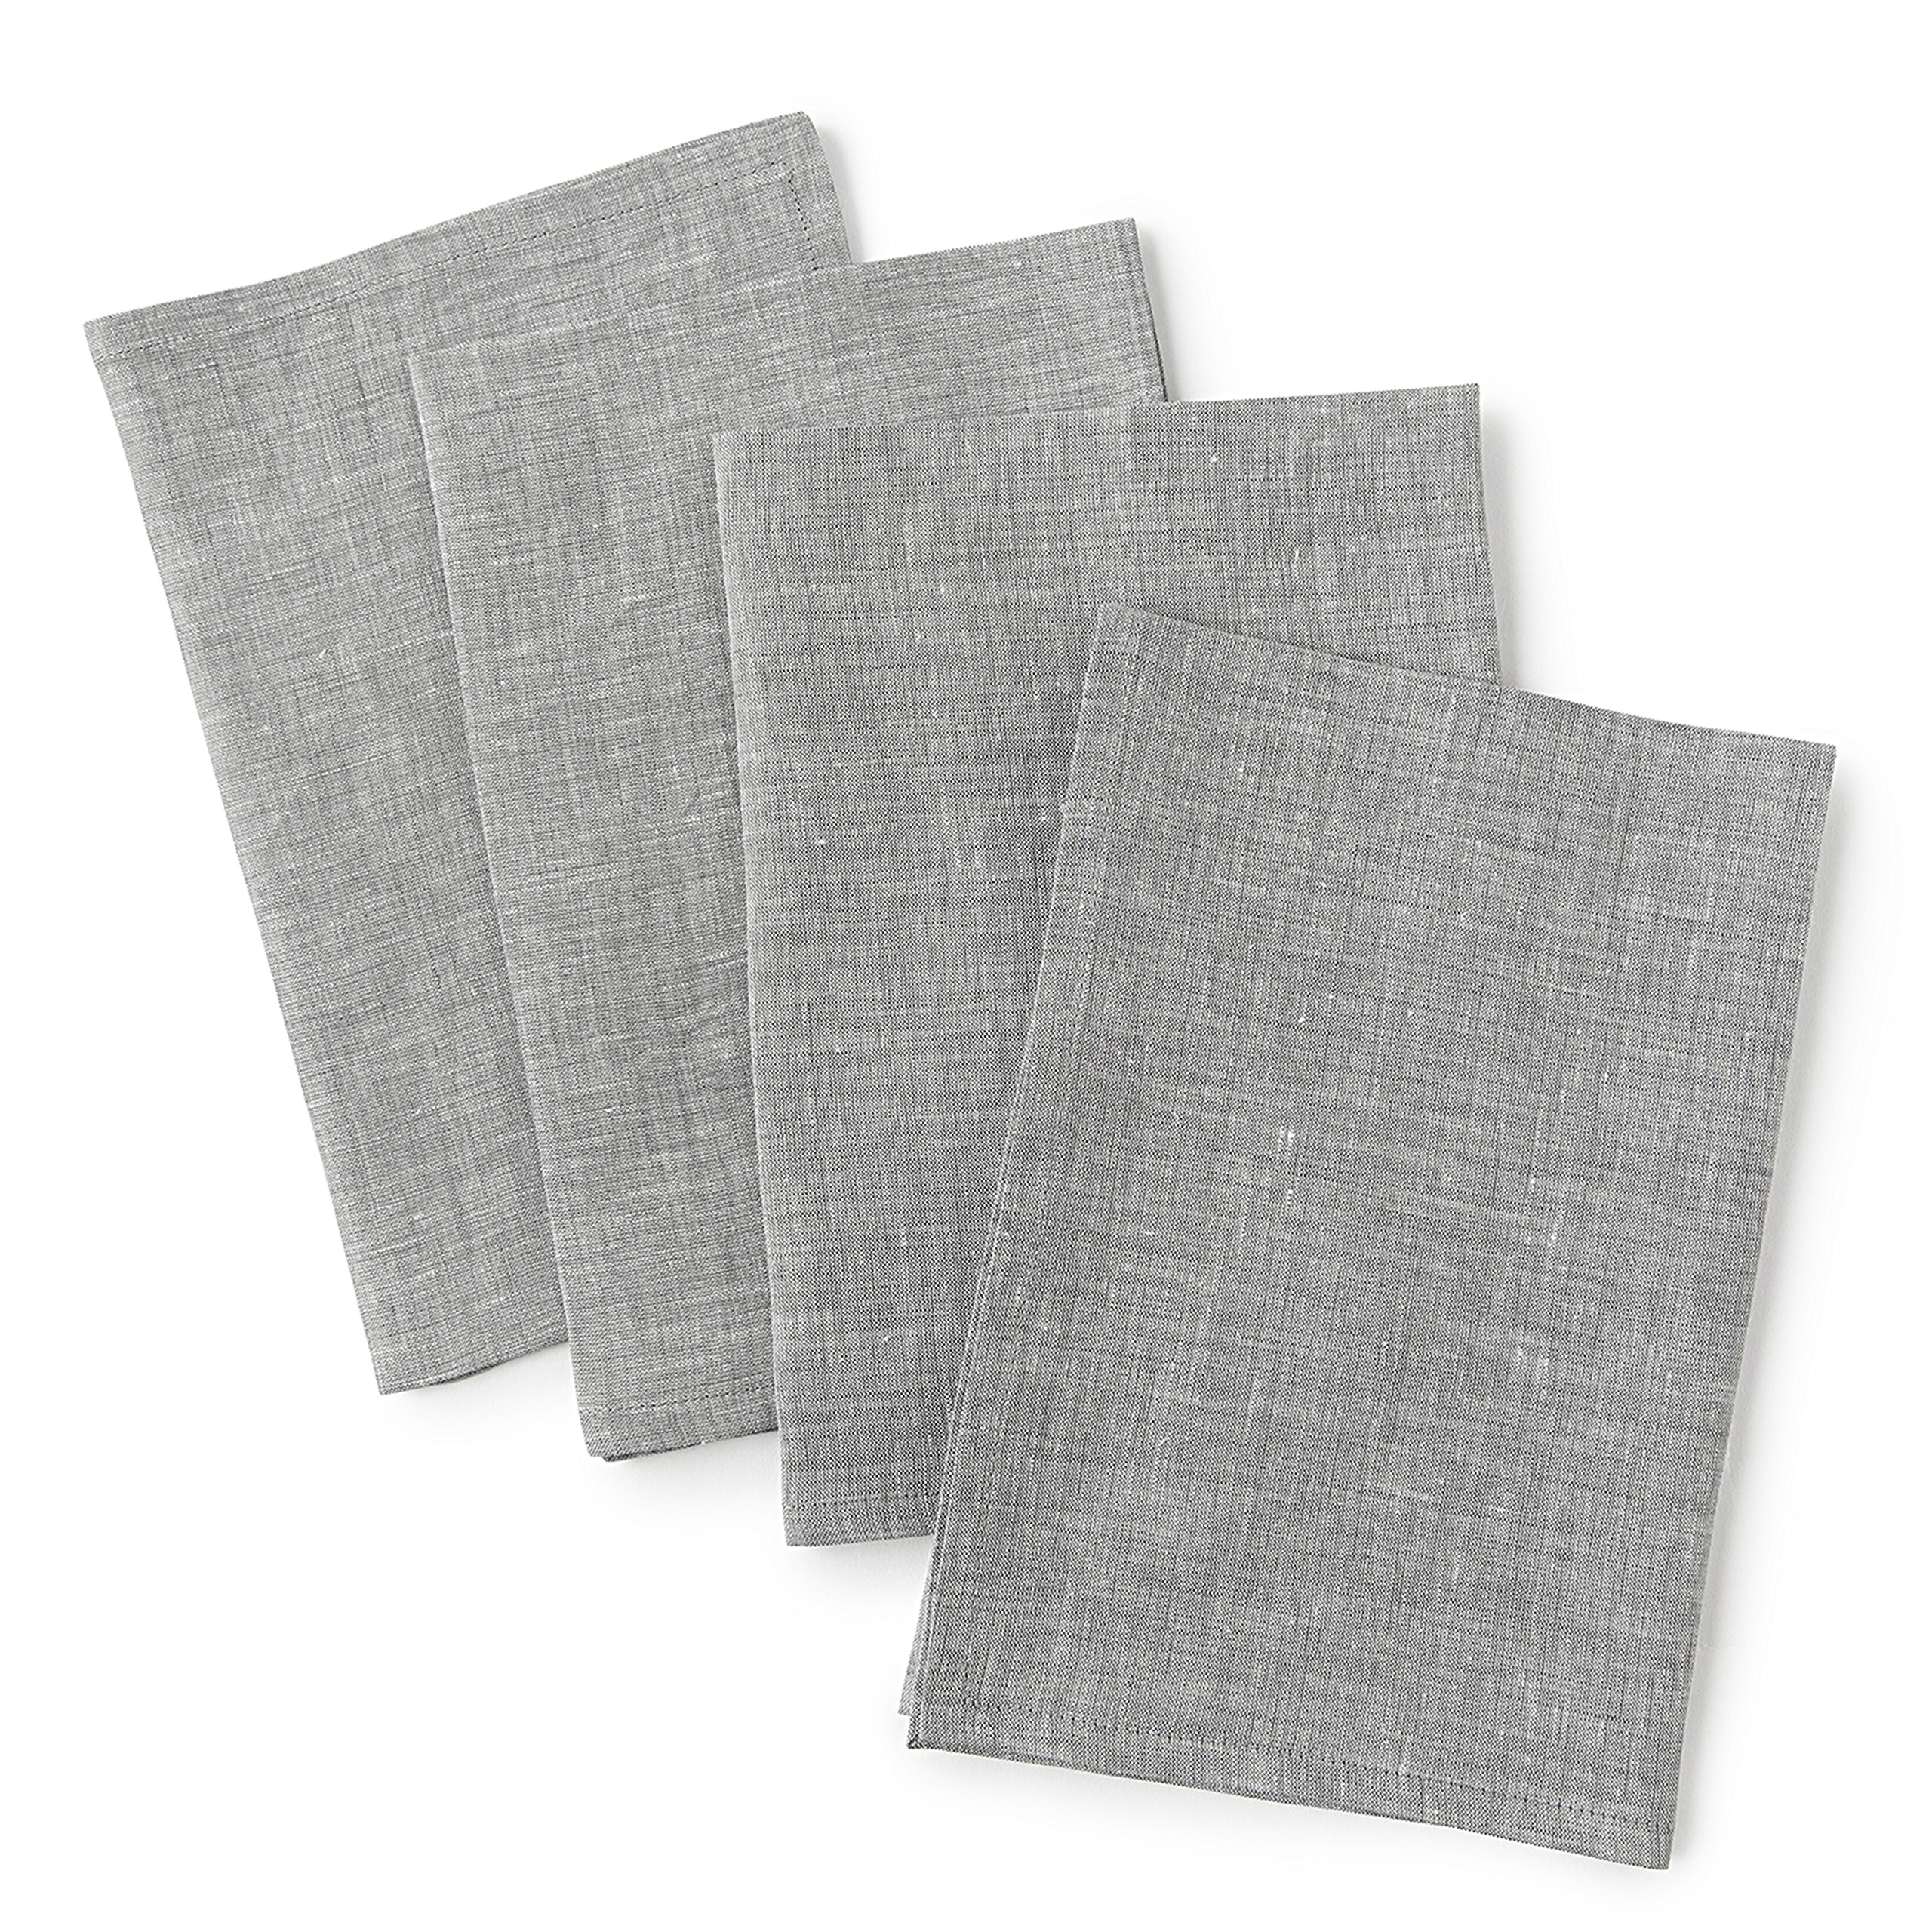 Solino Home Linen Dinner Napkins - 20 x 20 Inch Grey, 4 Pack Linen Napkins, Bella - 100% European Flax - Soft & Handcrafted with Mitered Corners